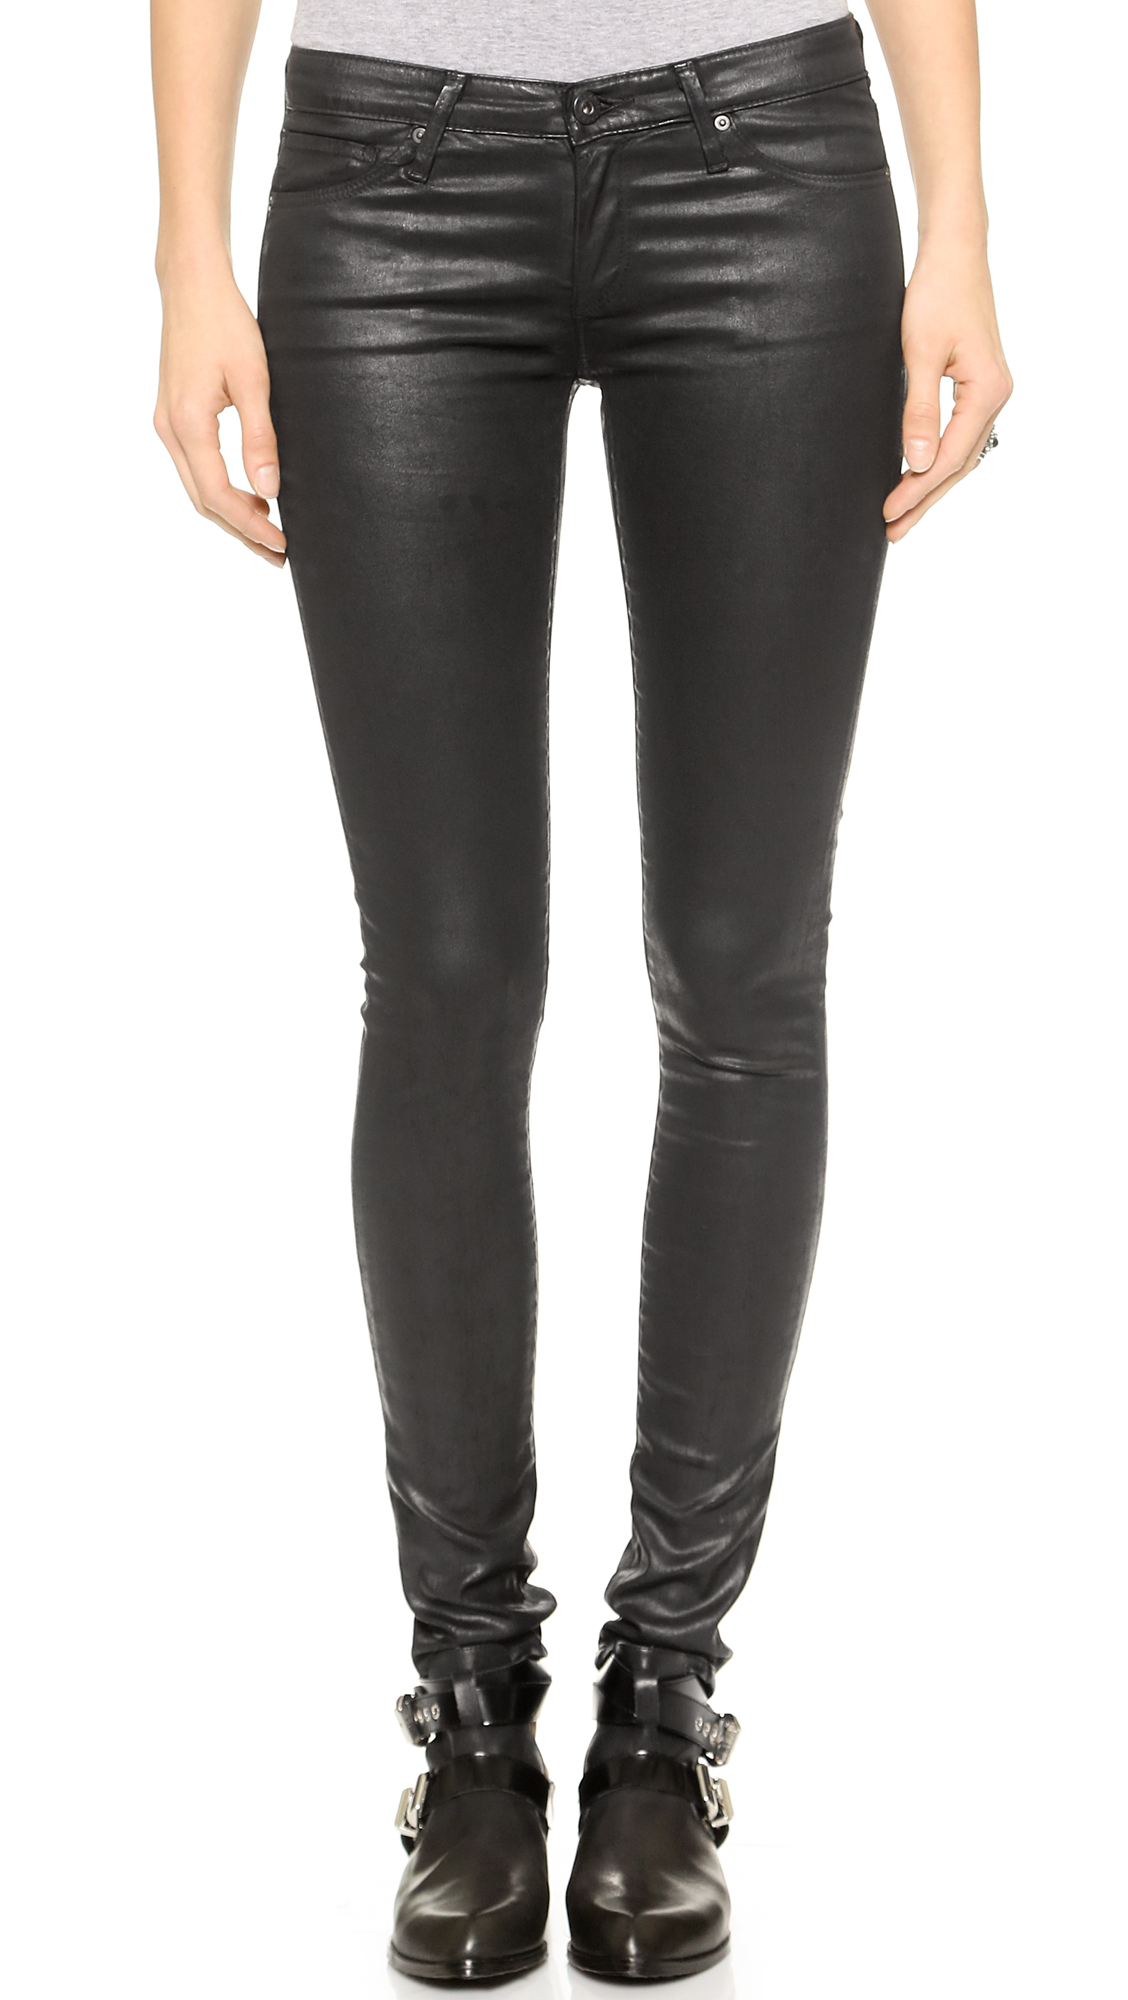 AG The Leatherette Legging Jeans | 15% off first app purchase with ...